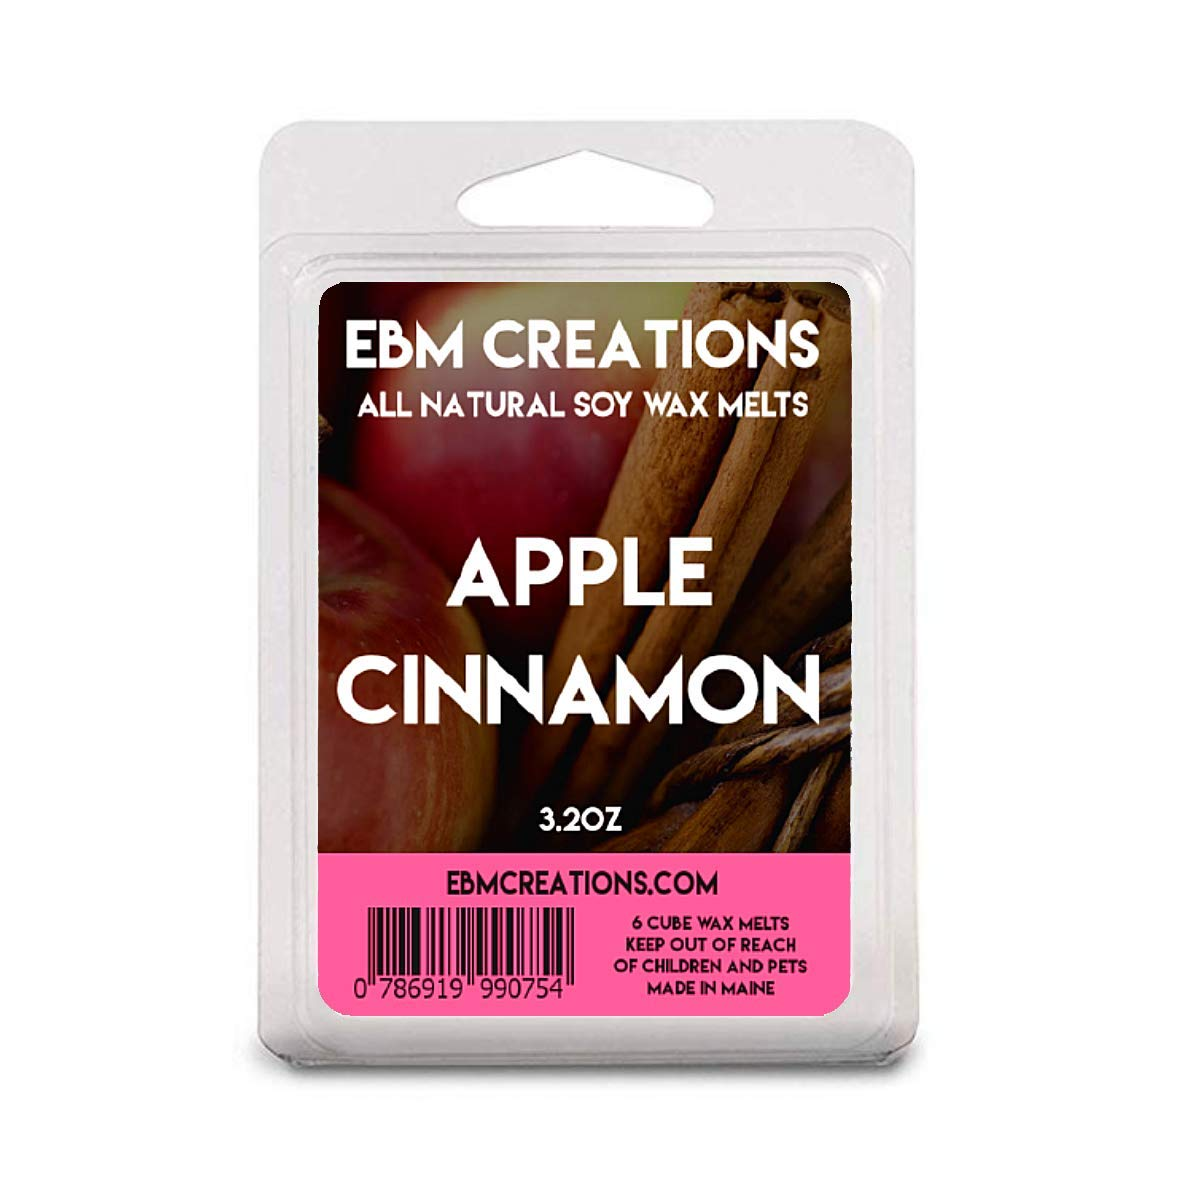 Apple Cinnamon - Scented All Natural Soy Wax Melts - 6 Cube Clamshell 3.2oz Highly Scented!